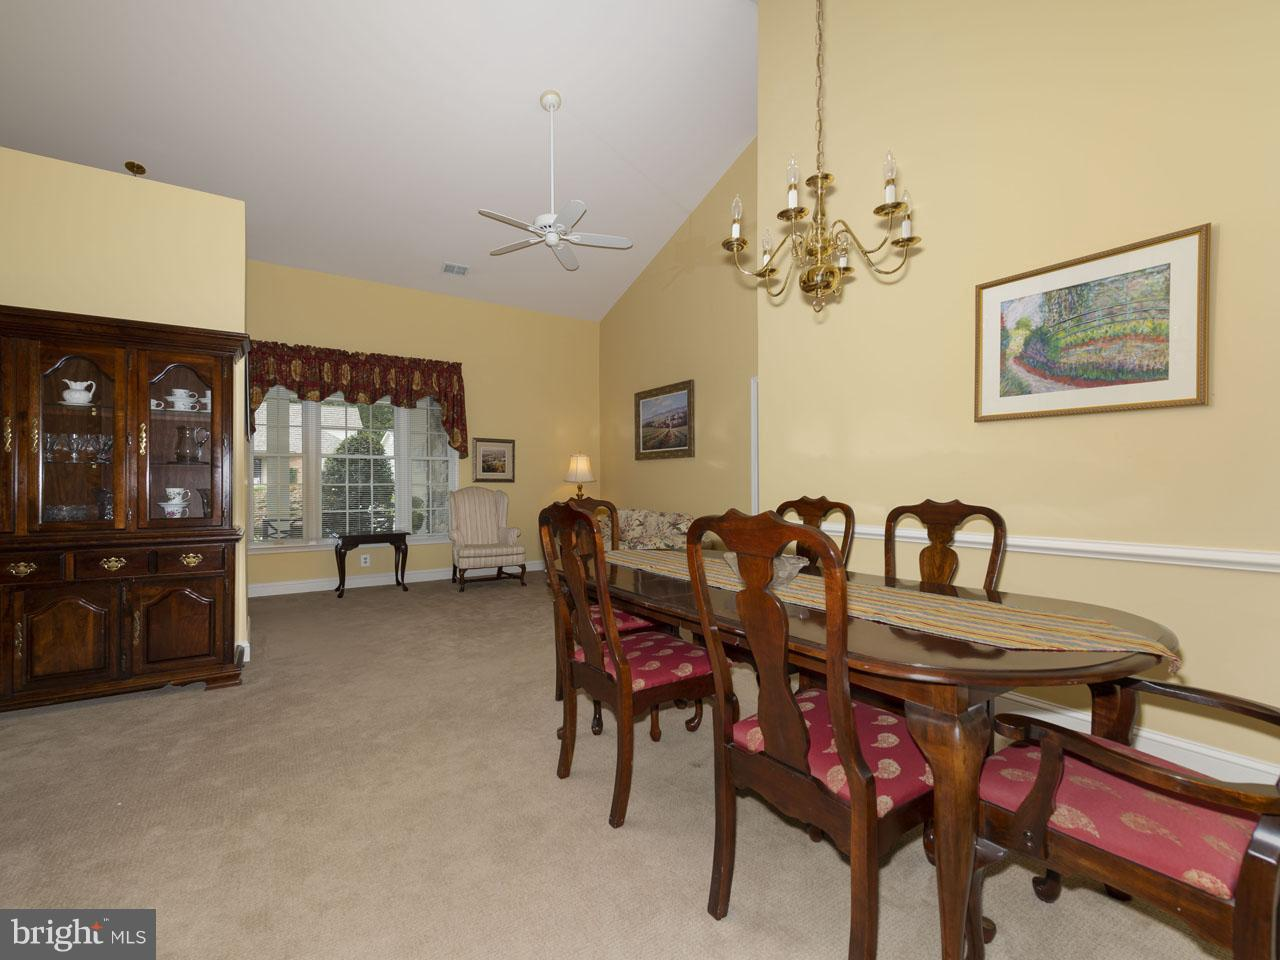 1005040466-300638084977-2021-07-22-06-45-08        Gainesville Delaware Real Estate For Sale   MLS# 1005040466  - Best of Northern Virginia